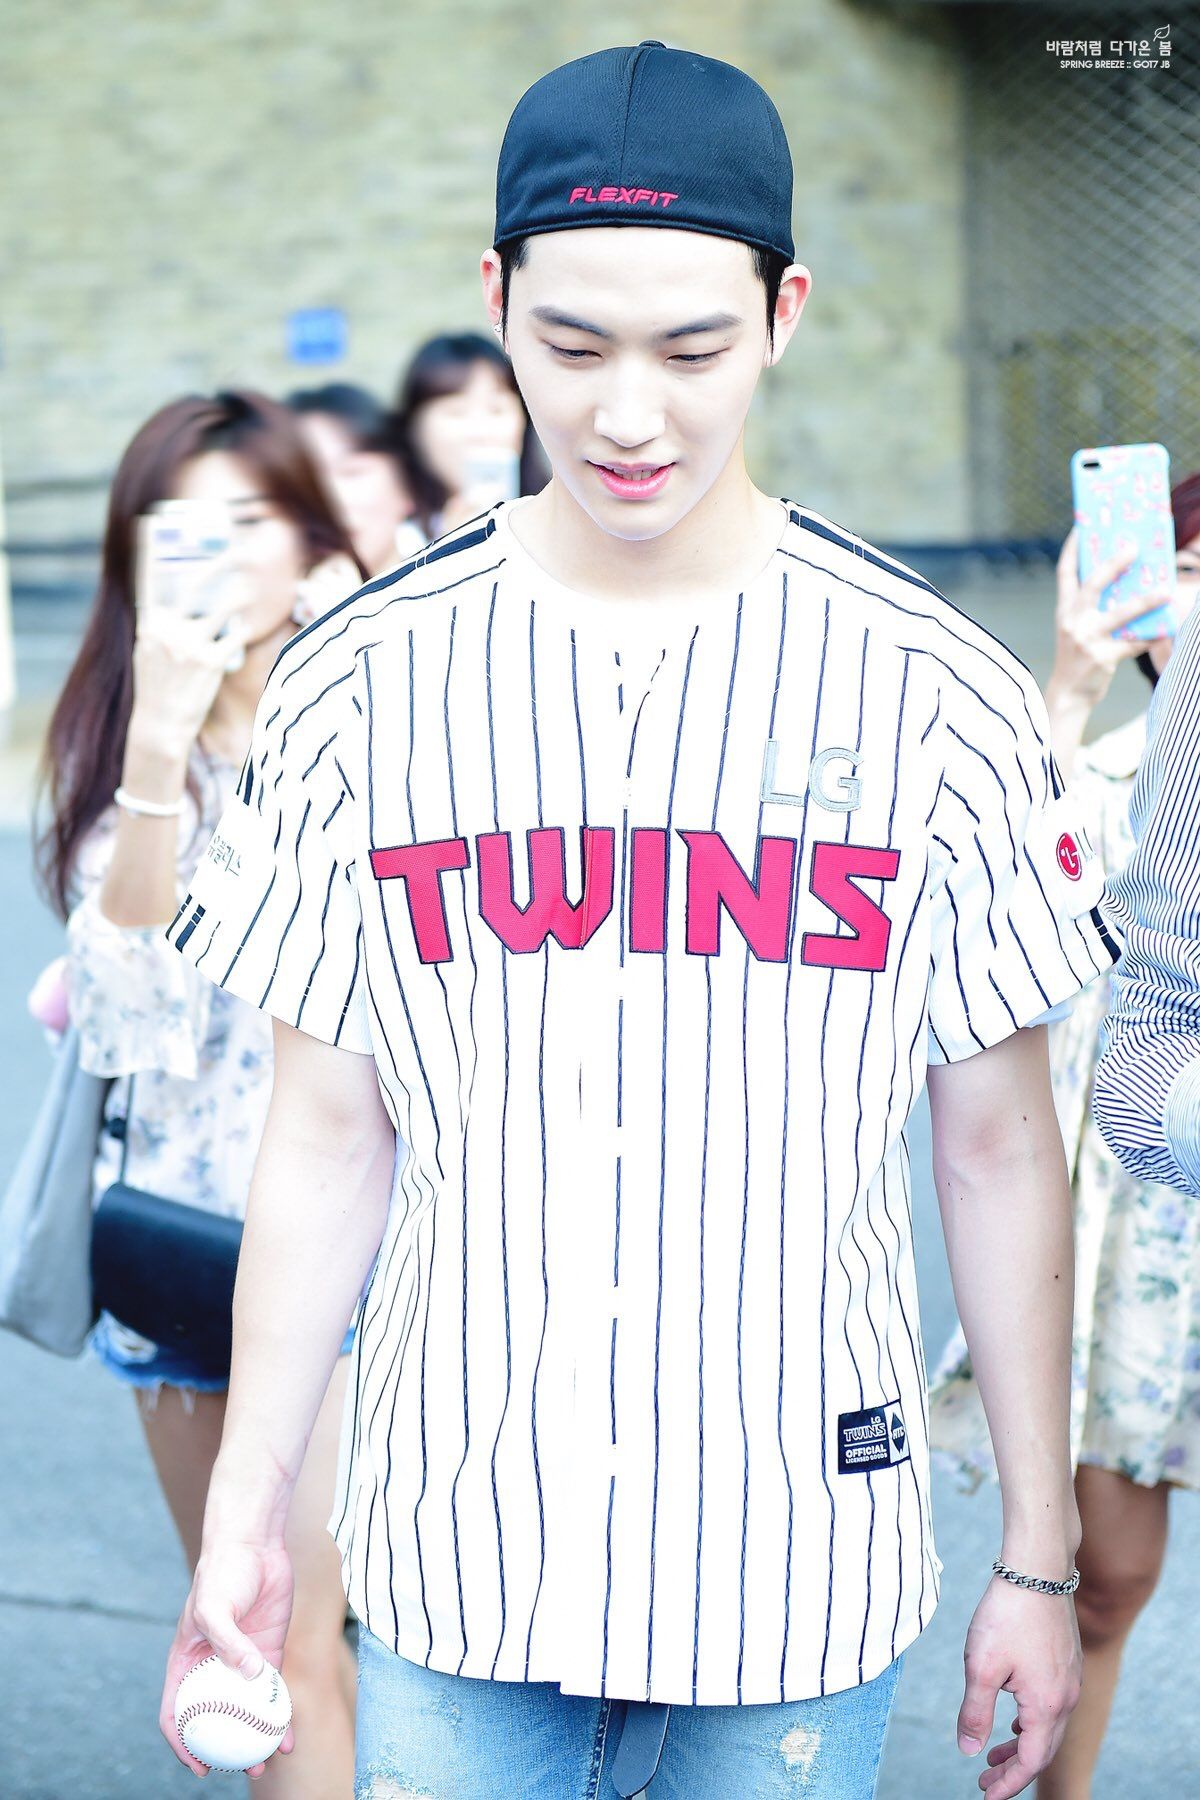 Got7 JB | JB's ideal type is a cute girl who catches his attention